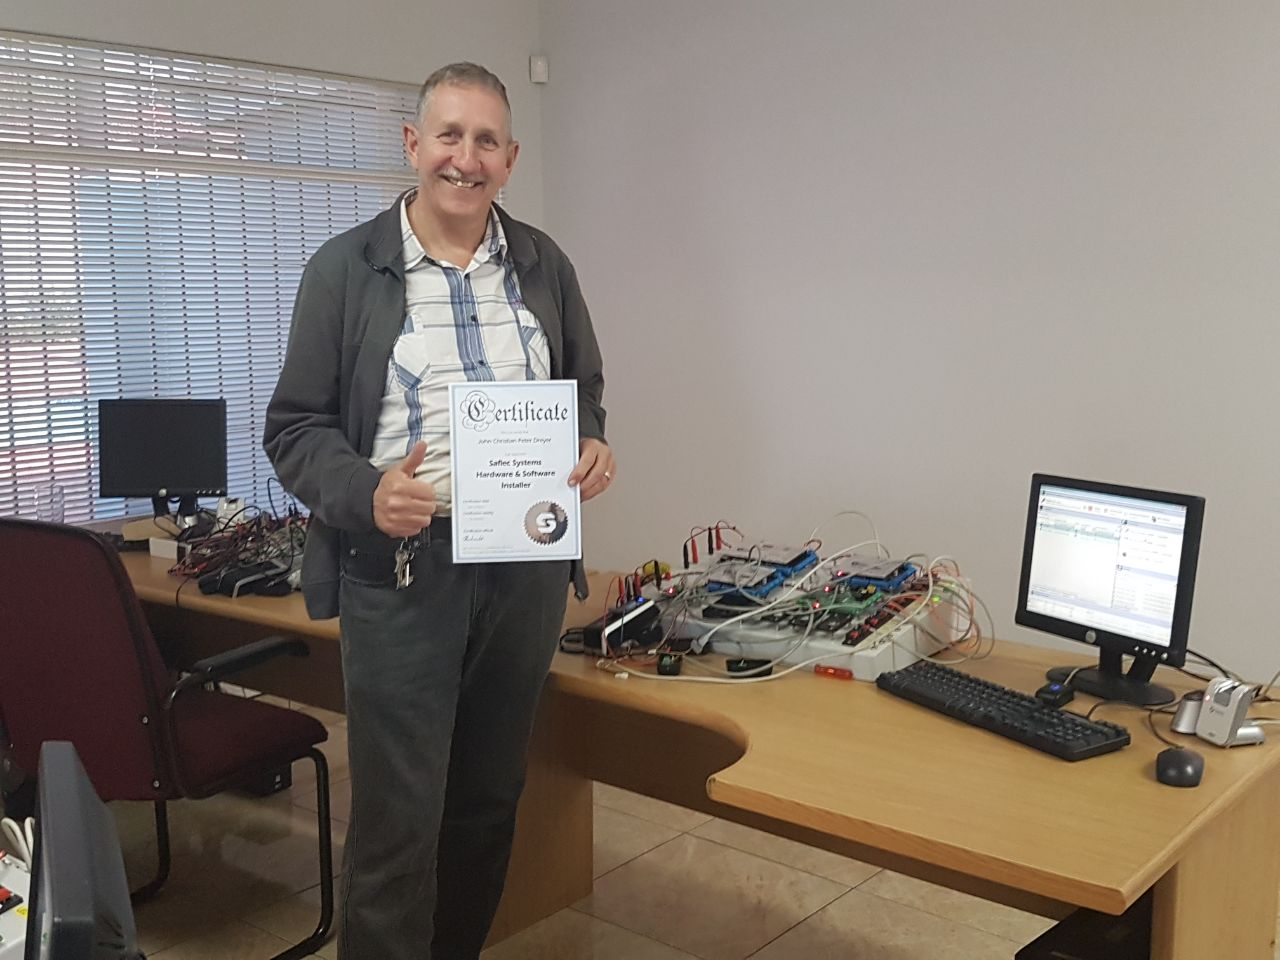 Peter Dreyer: Service Small Works Manager for SFP Security & Fire